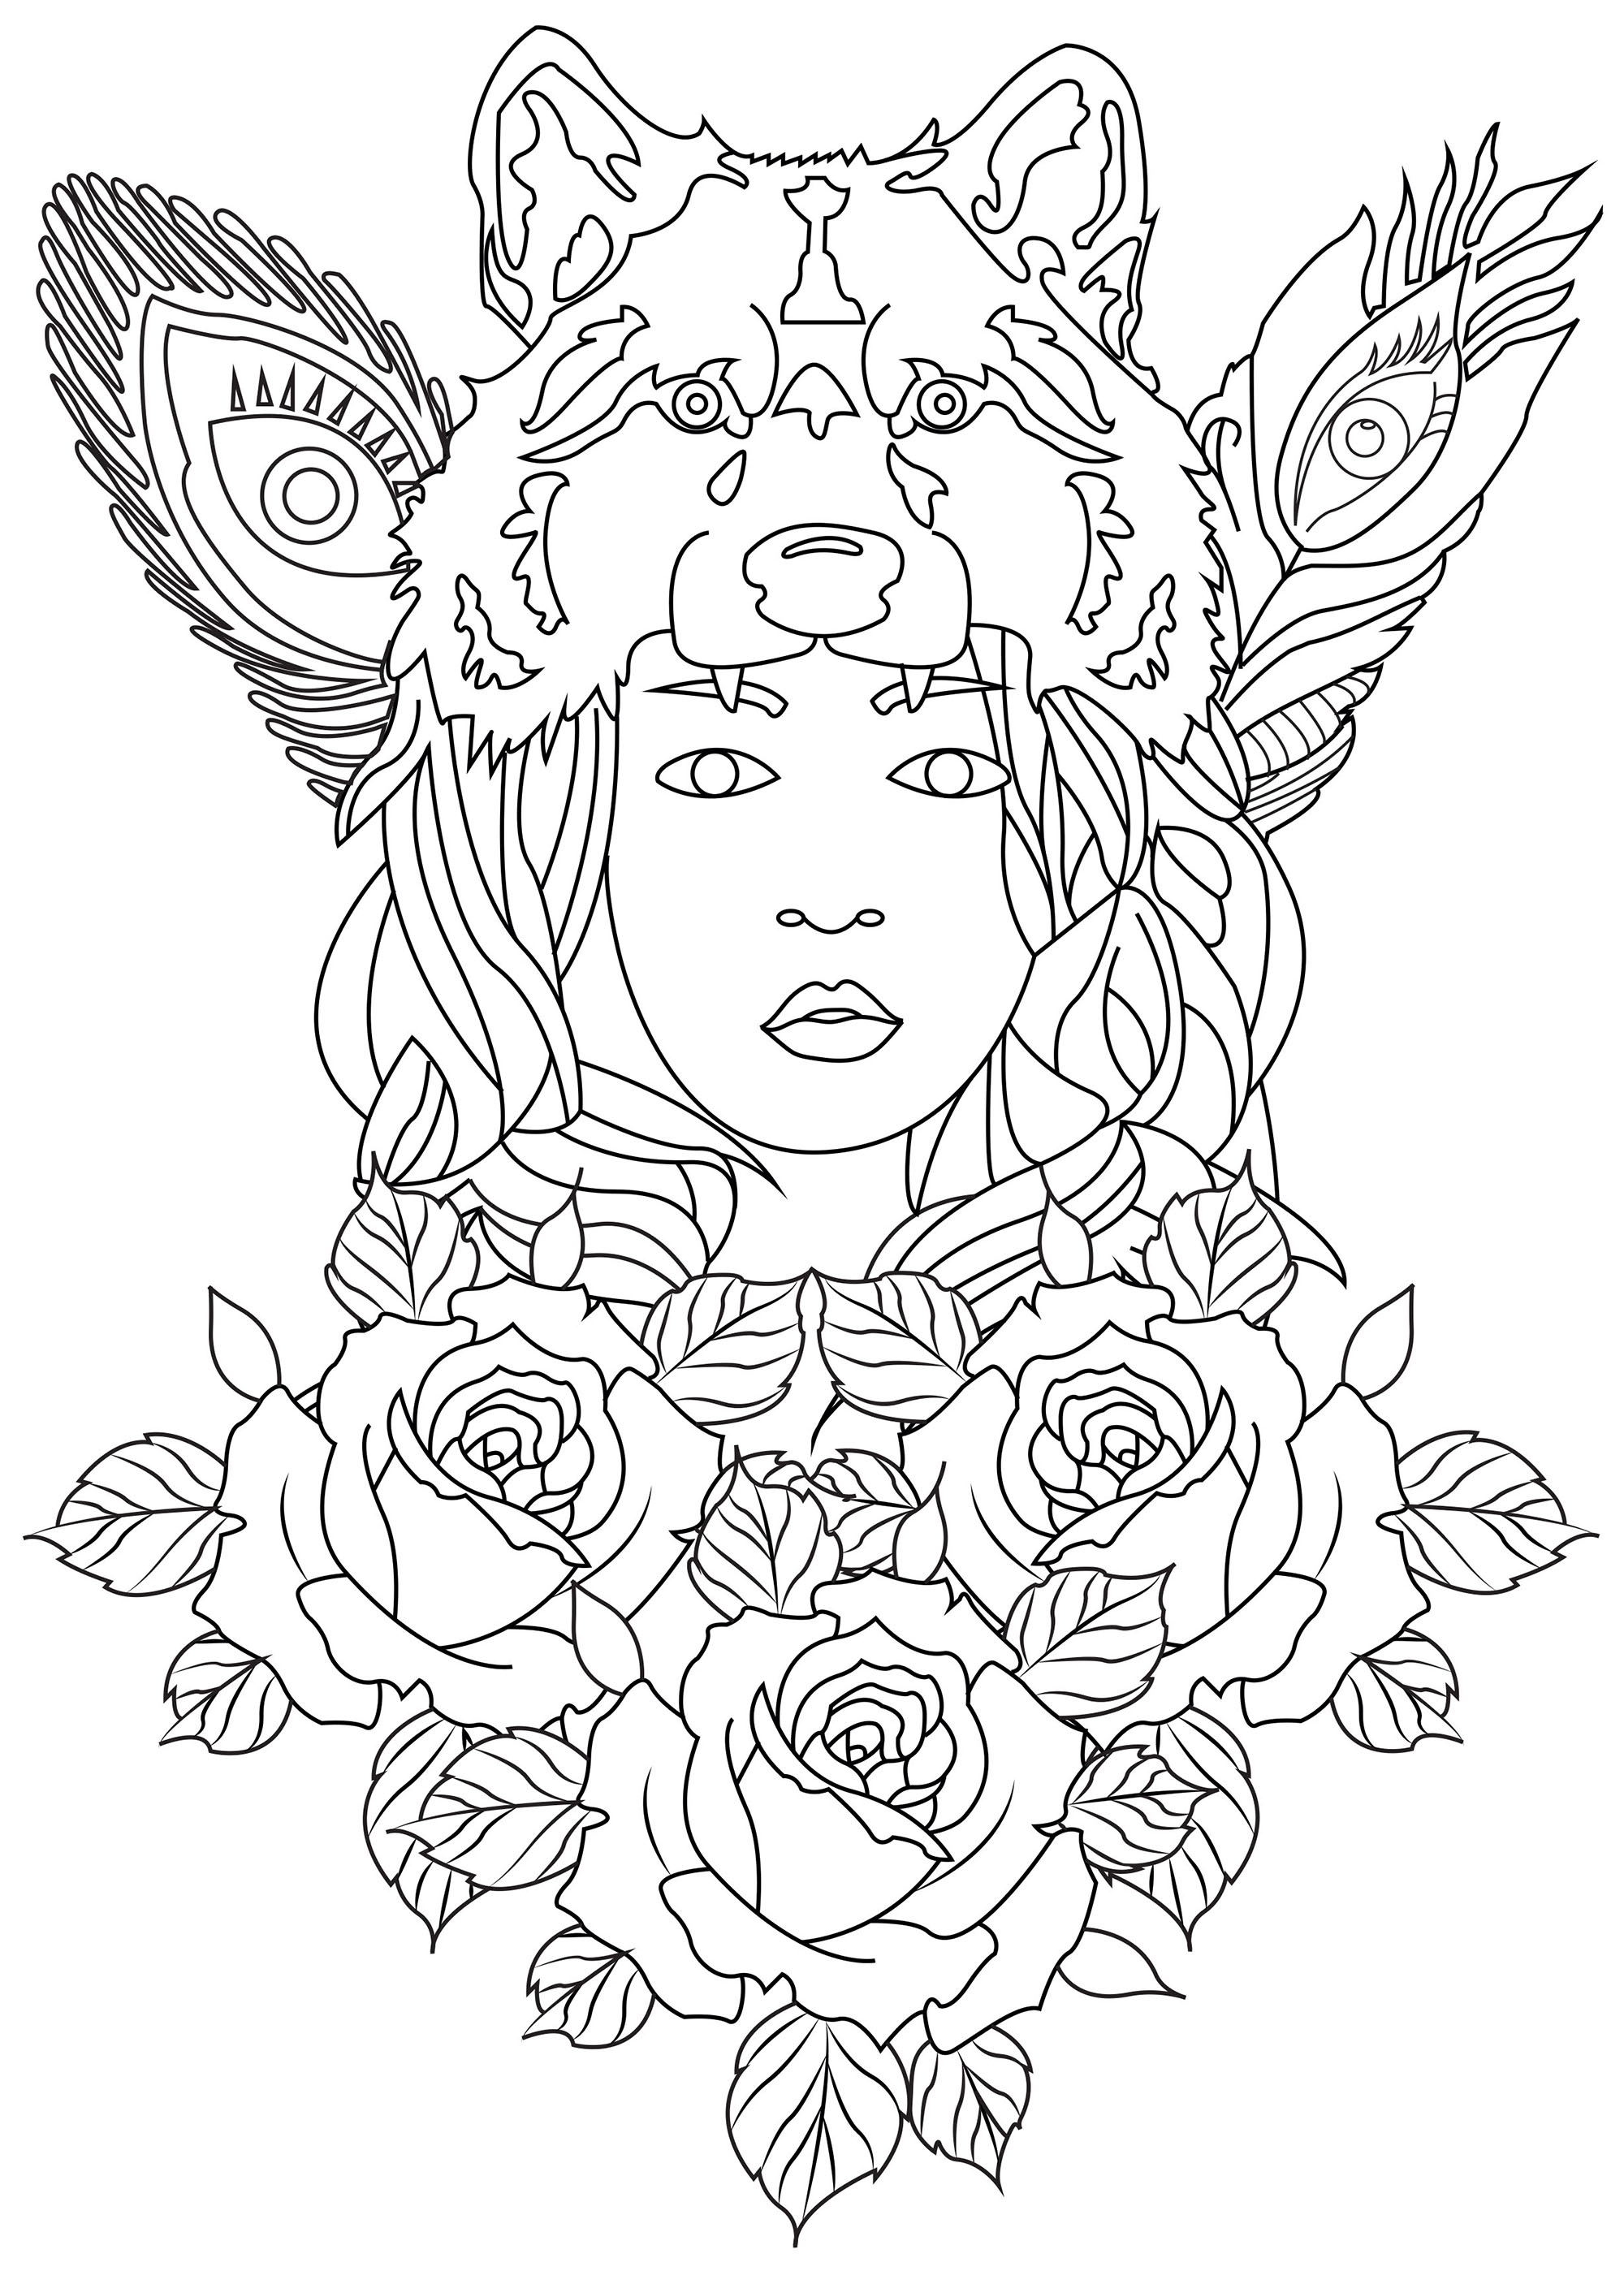 Color this wolf woman and all the roses and feathers that surround her